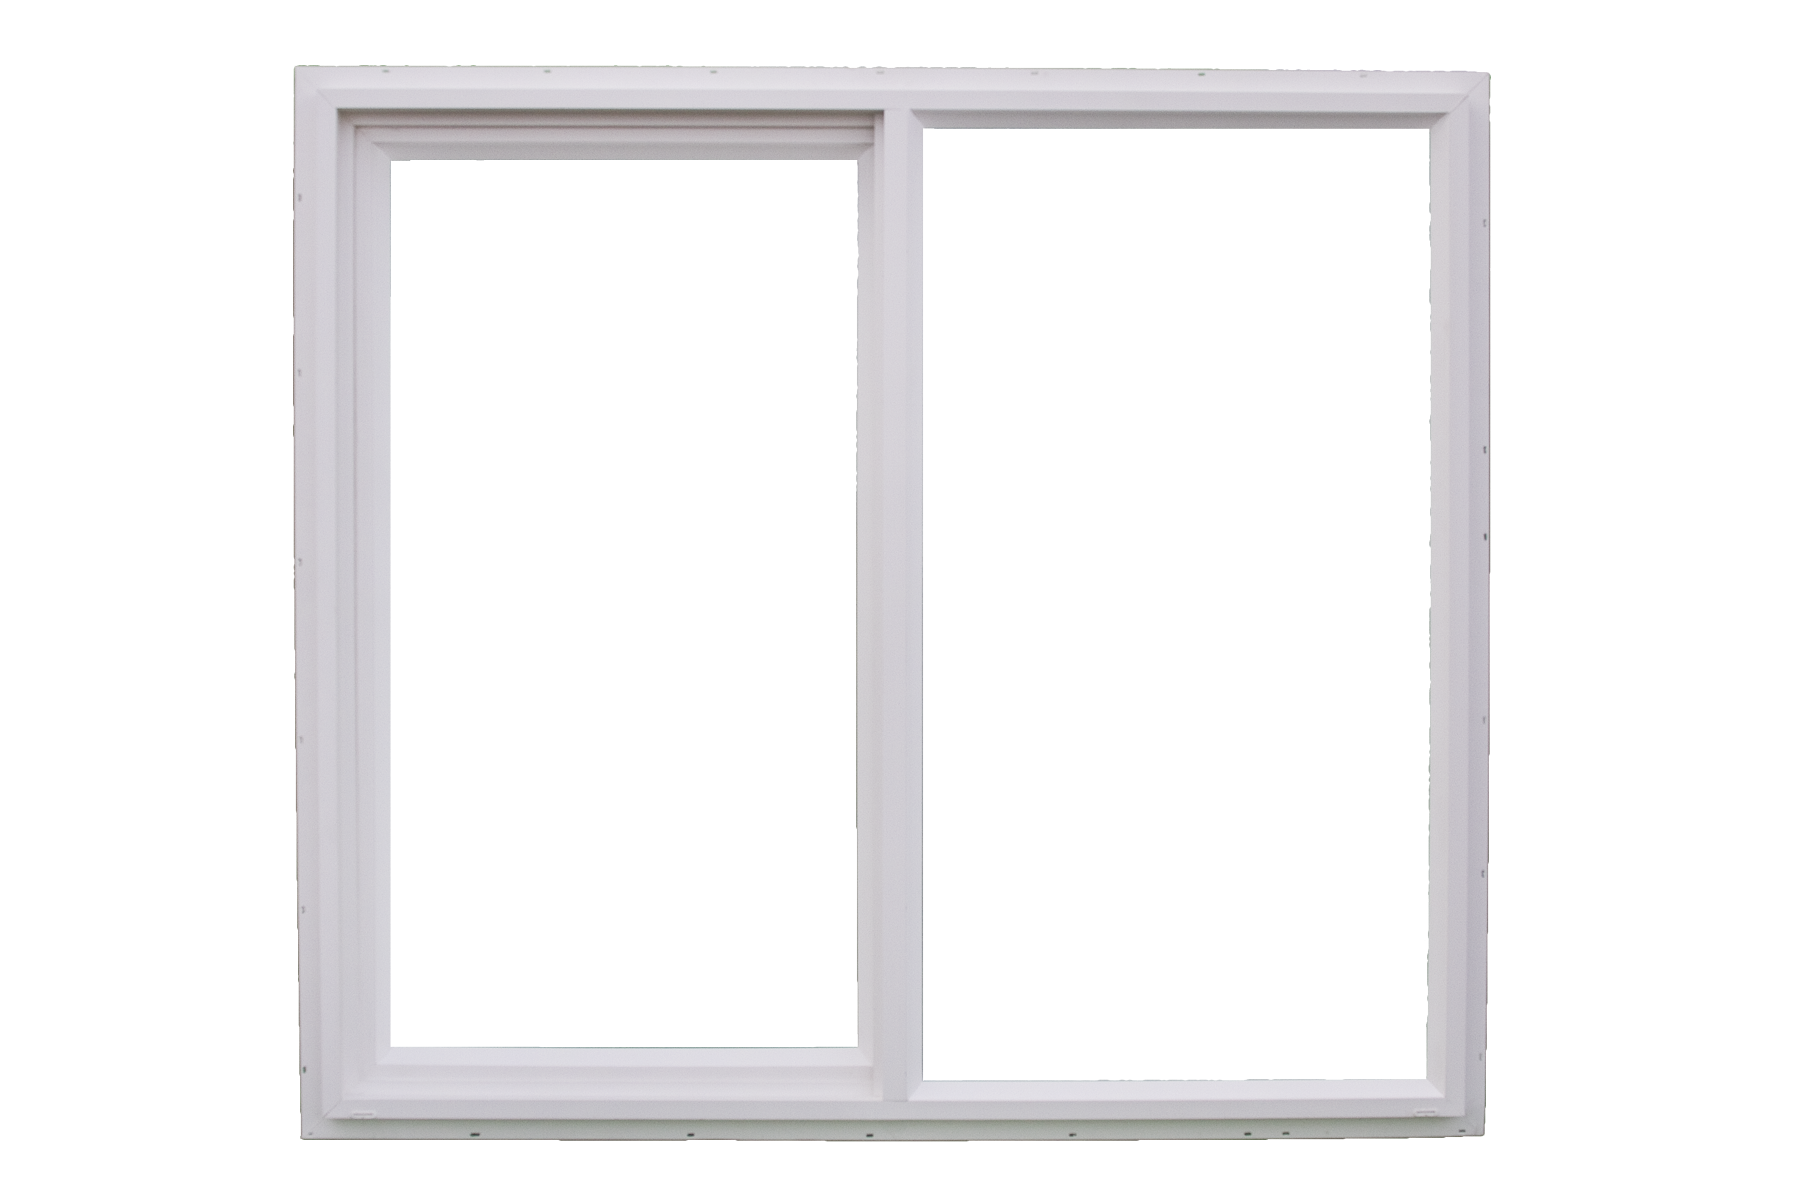 Window Png Designs image #23842